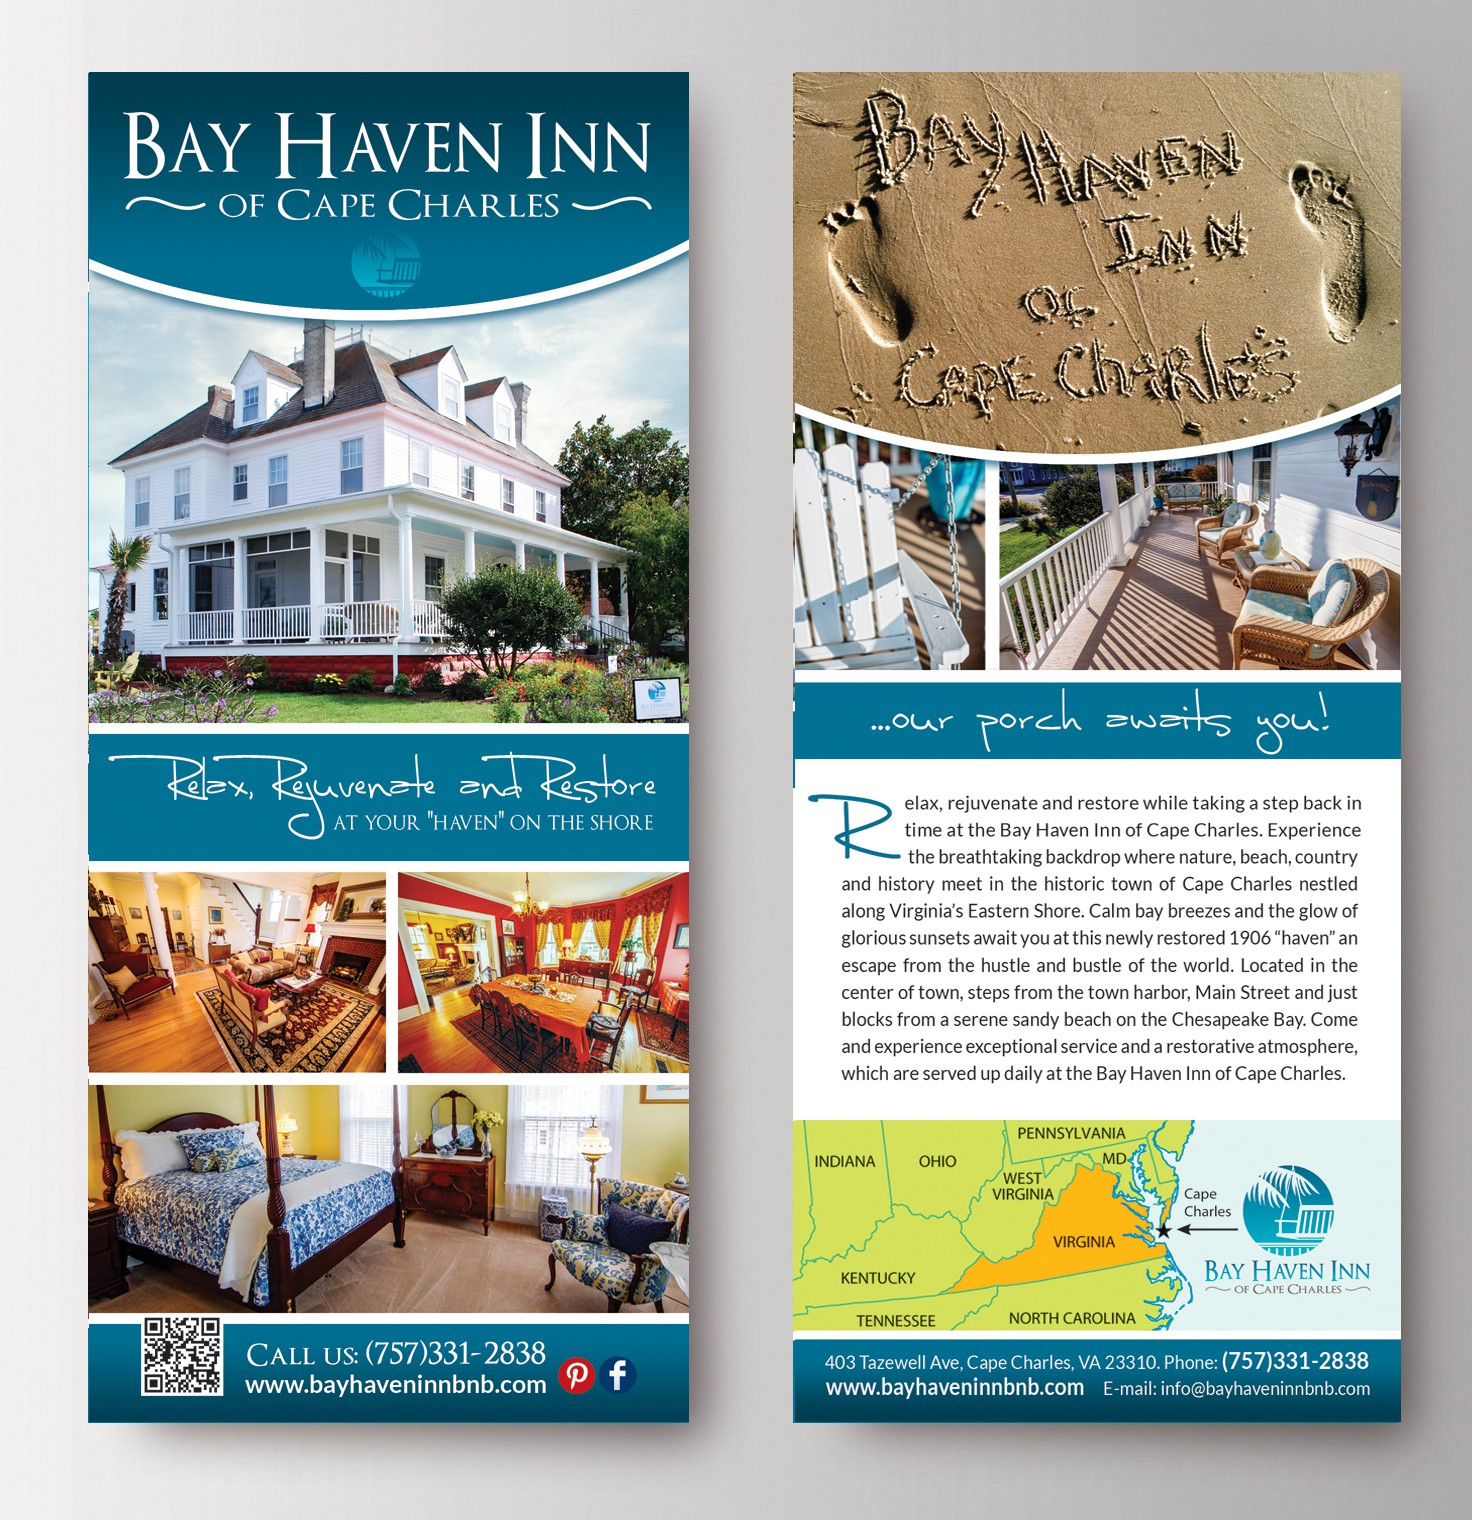 Help Bay Haven Inn of Cape Charles with a new business or advertising